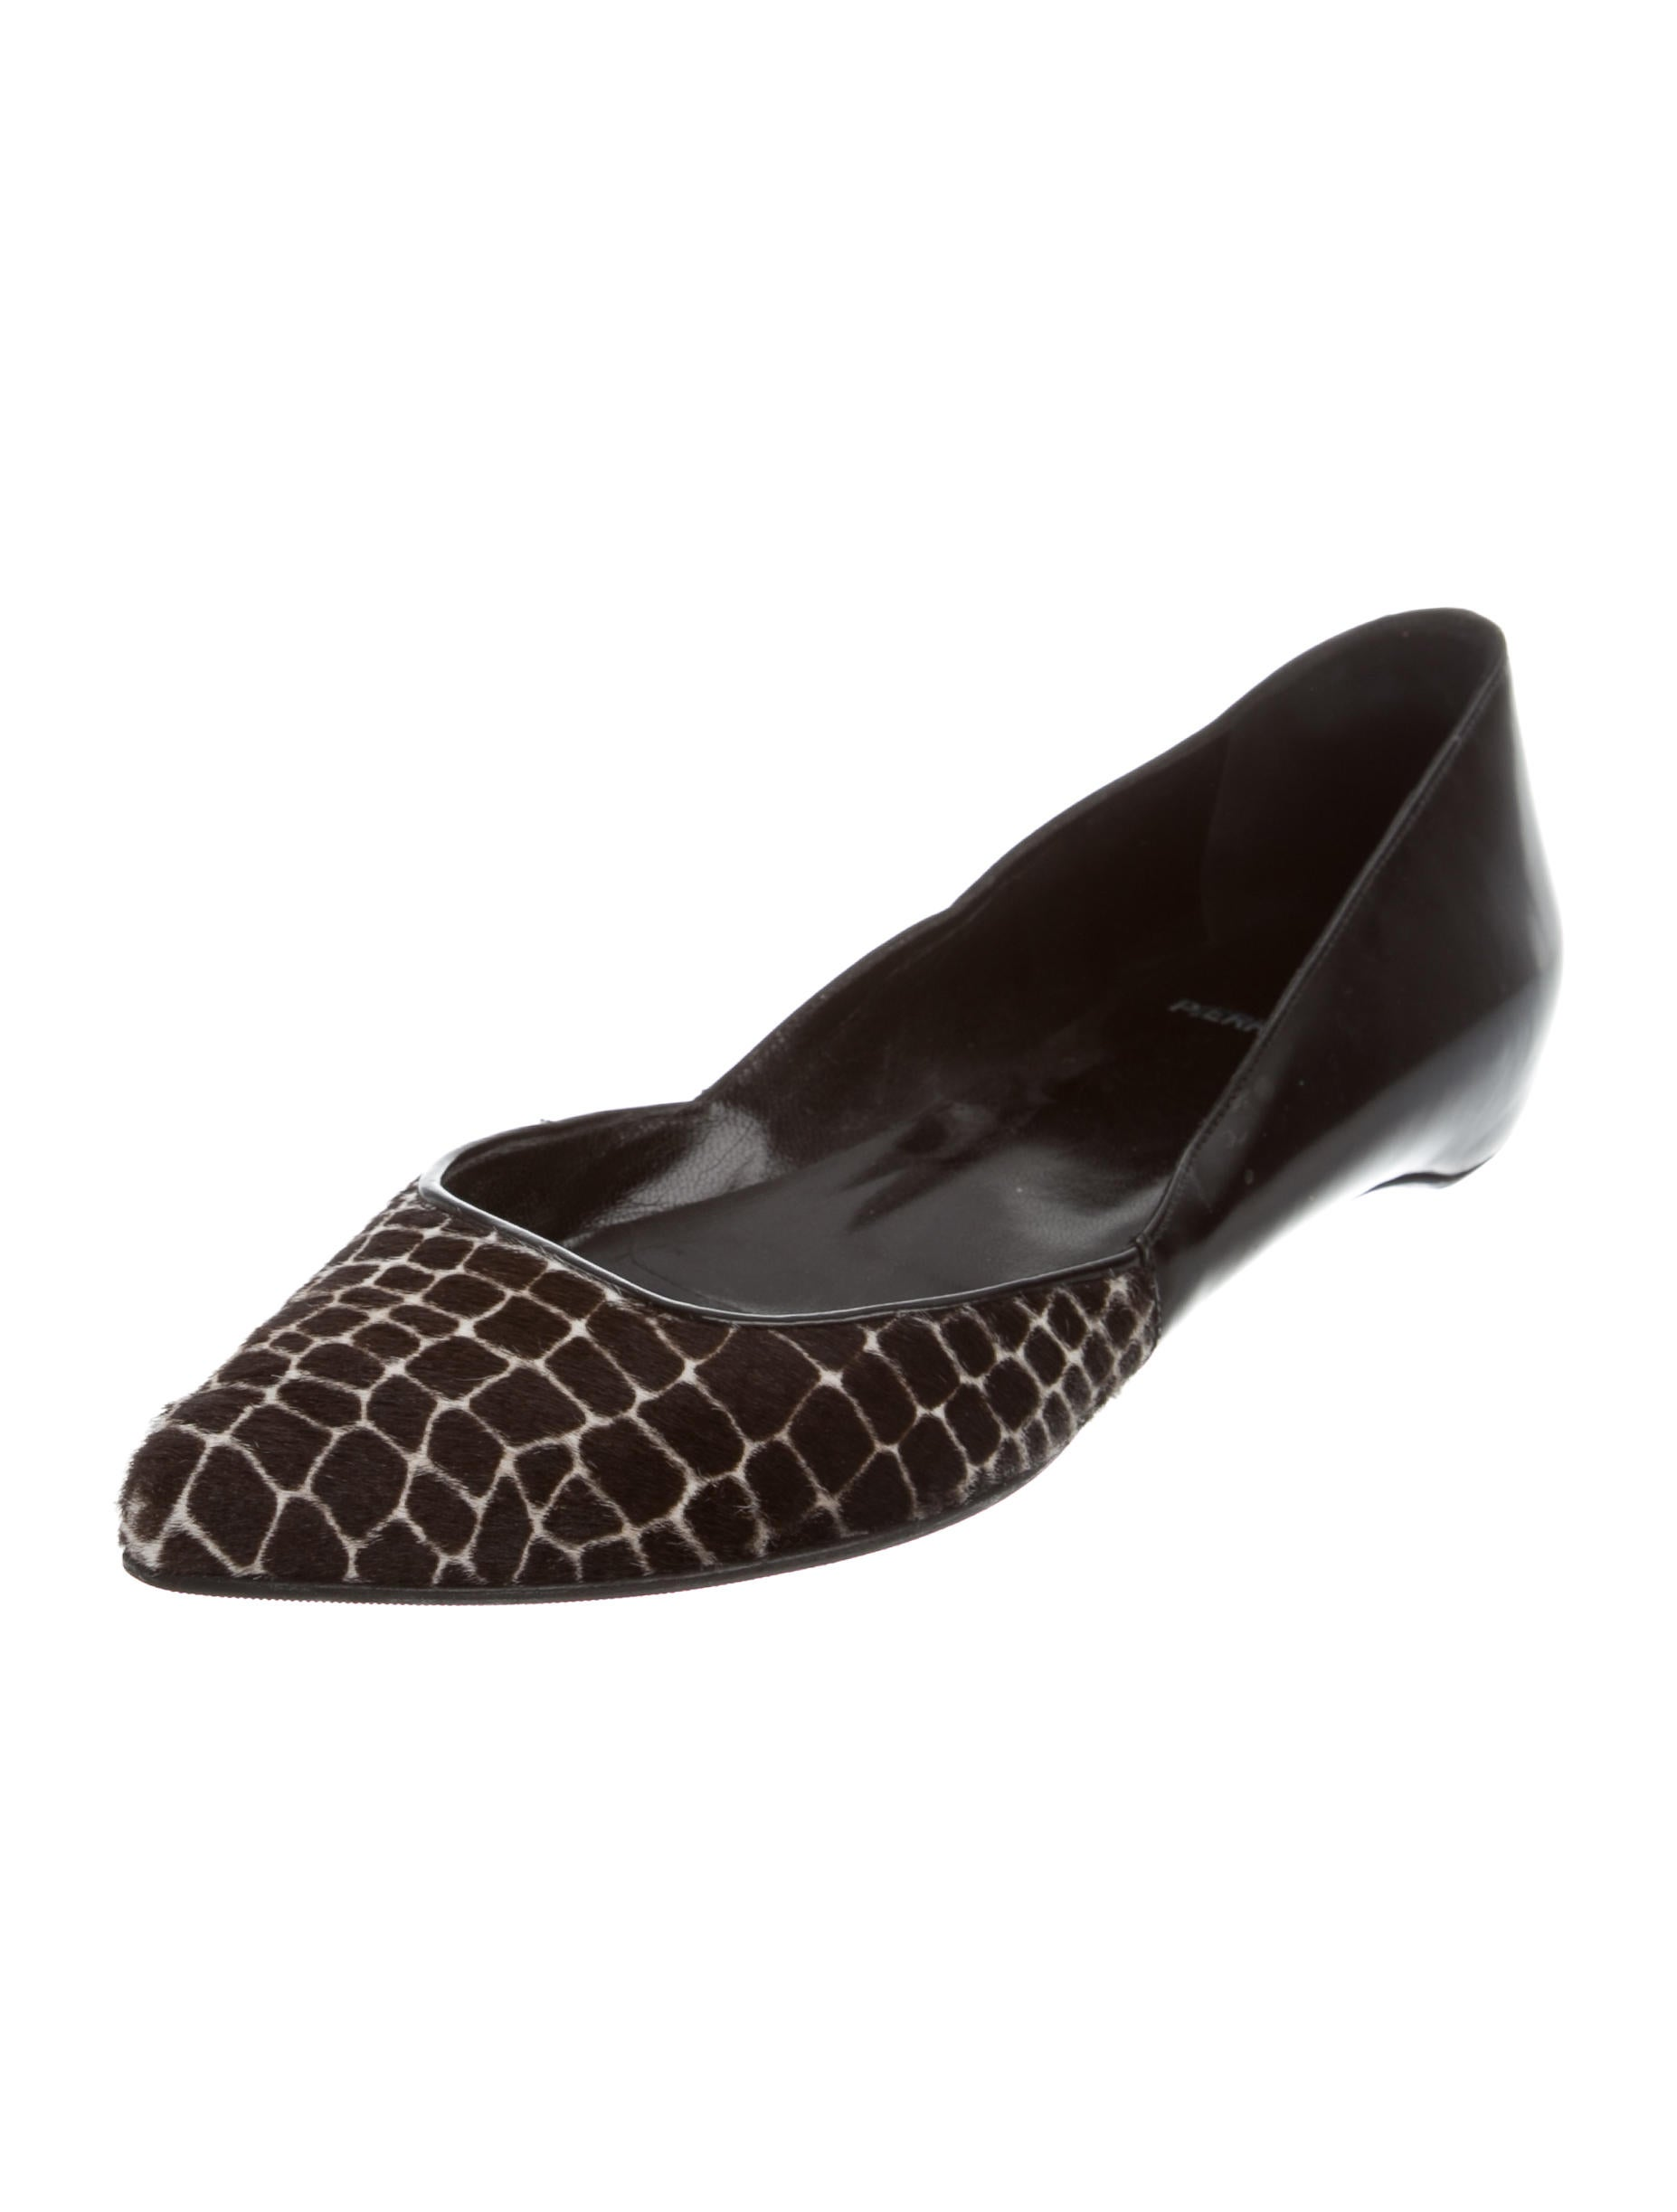 deals for sale Pierre Hardy Ponyhair Printed Flats sast outlet cheap authentic free shipping wiki buy cheap very cheap CMNY8Wbaq